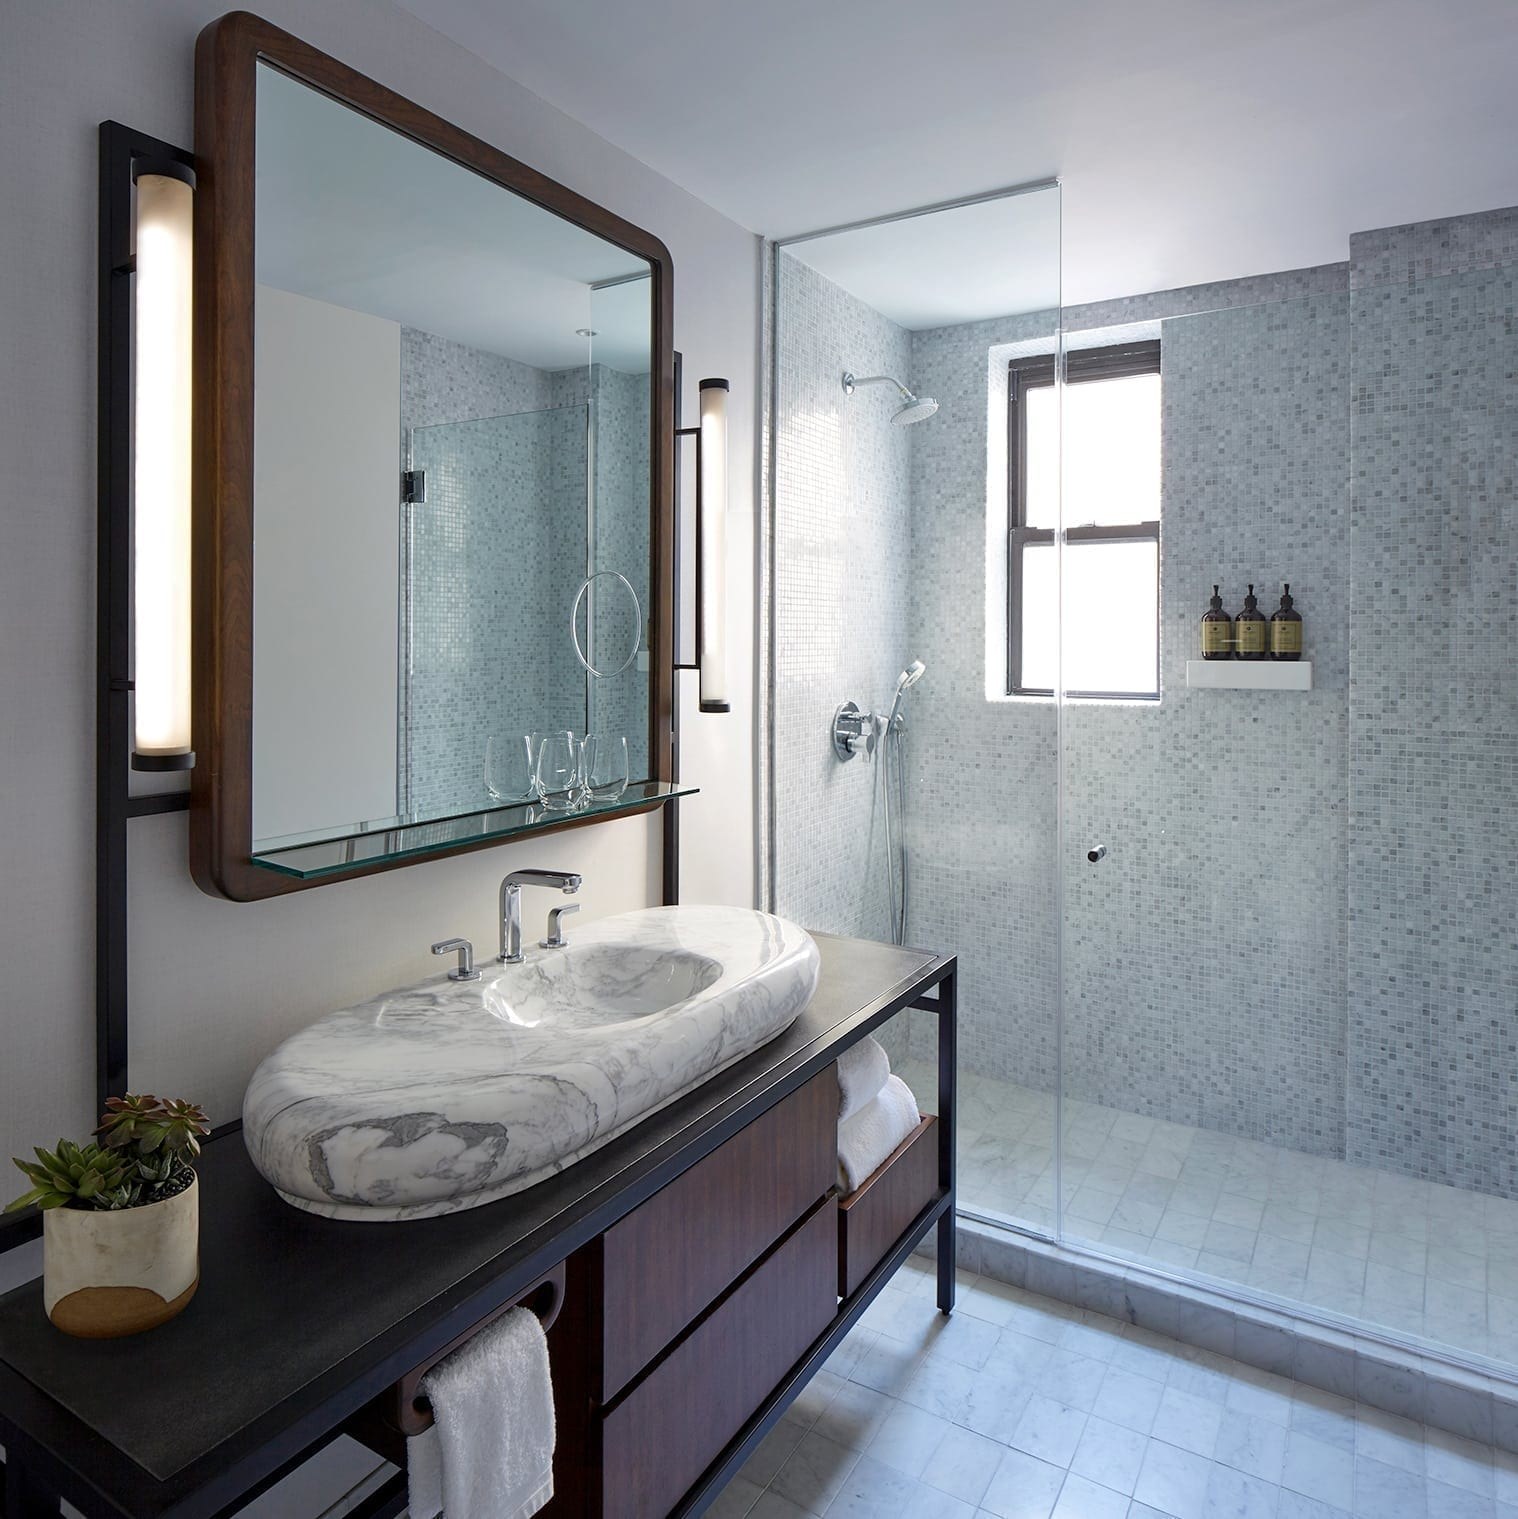 Looking inside the bathroom of the Jimmy Suite at the James Hotel (NoMad). A full sized shower chamber receives light from a window. Towels, toiletries and complementary items are stocked within the sink and cabinet.